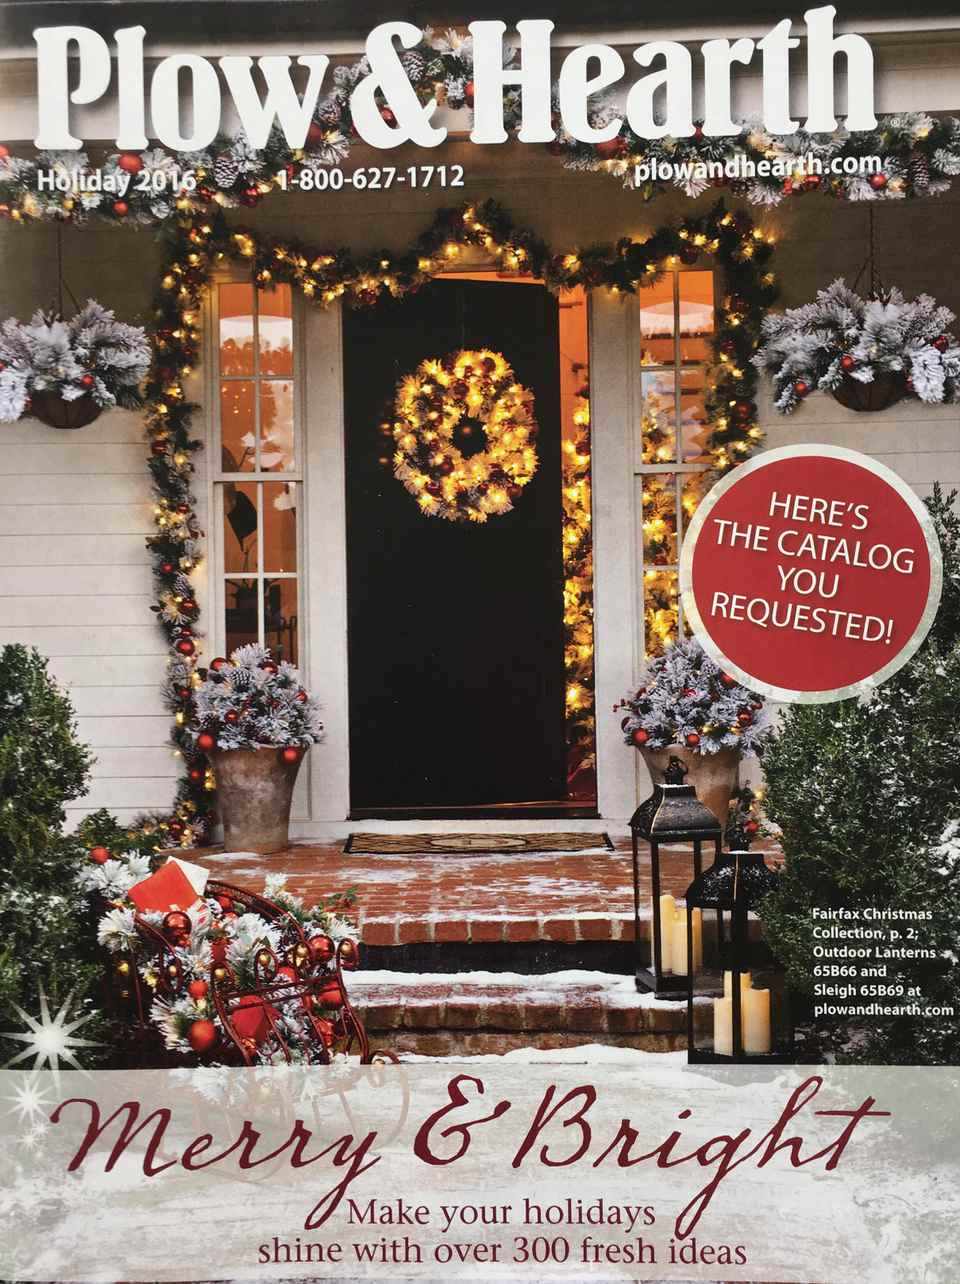 hearth plow catalogs mail holiday upscale